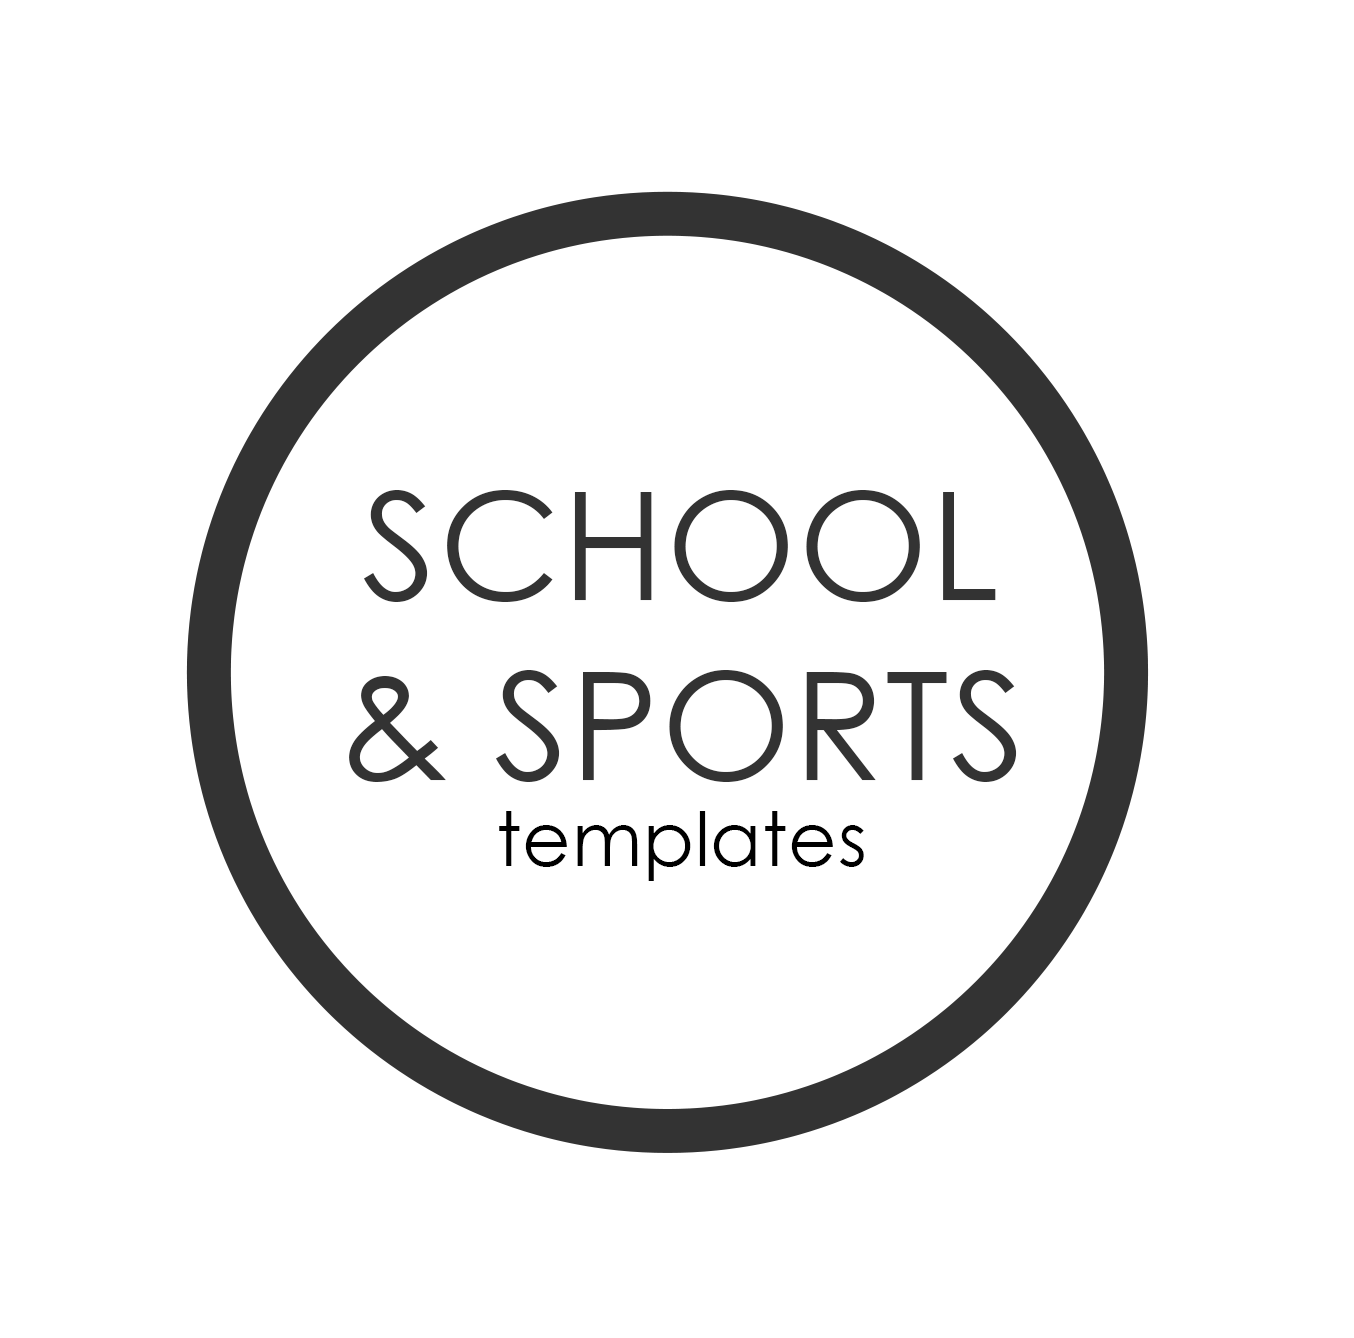 School_sports_icon.png